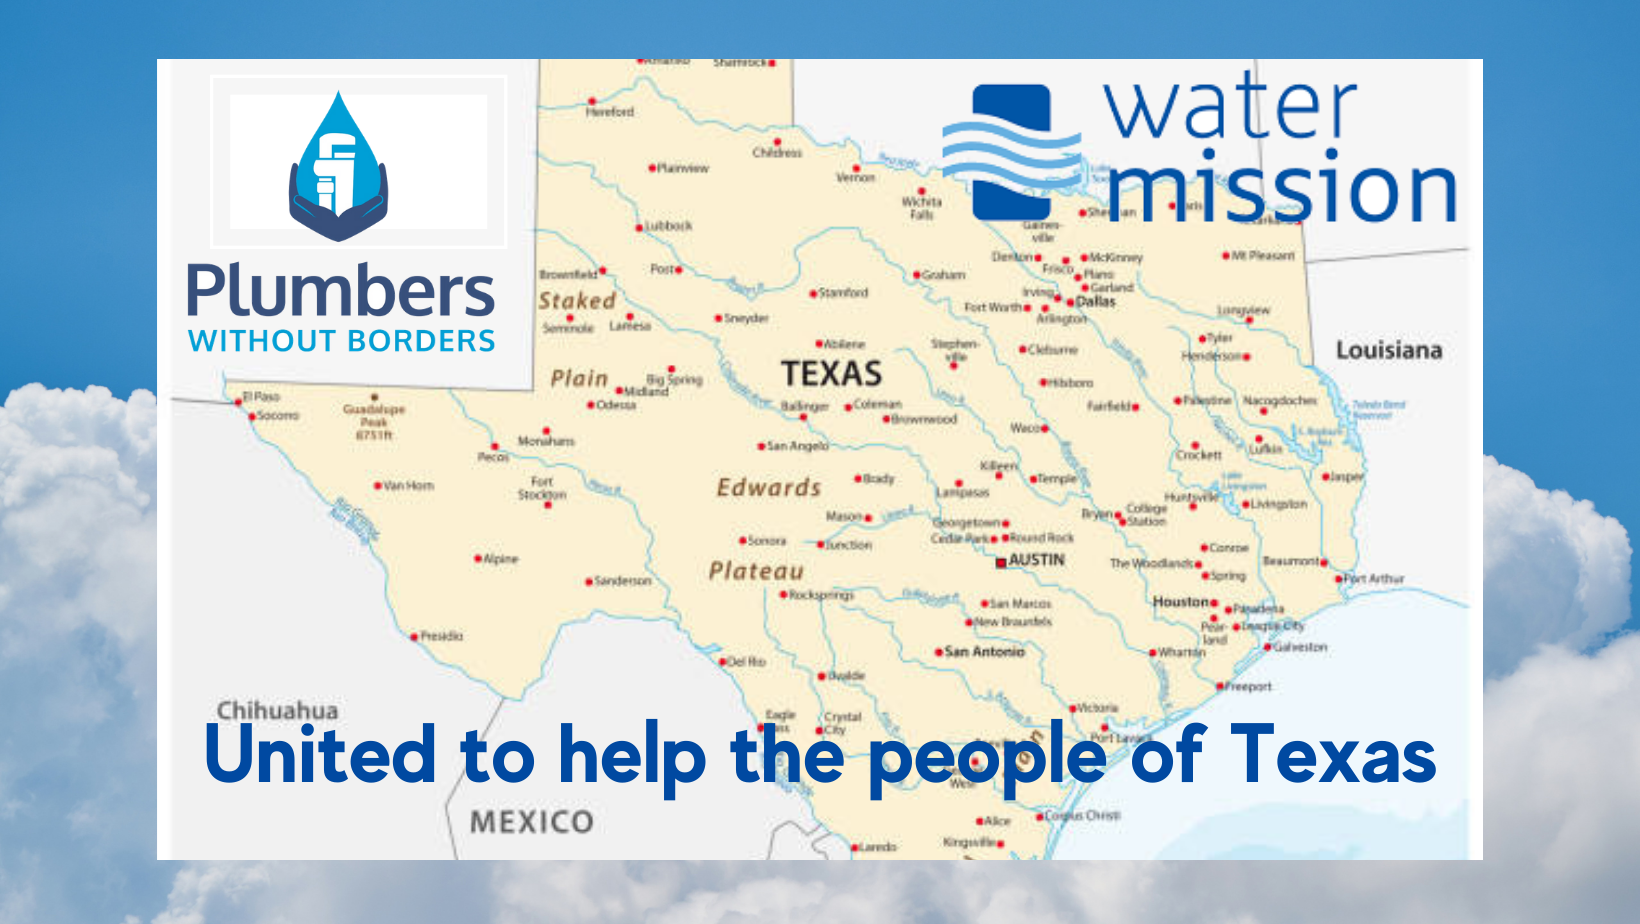 Thanks to the tremendous generosity of volunteer plumbers from across the country, and industry leaders stepping up to help the people of Texas, access to safe running running was restored for hundreds of families, whose pipes and plumbing systems were damaged by the freezing temperatures of February's storm Uri. (2021)